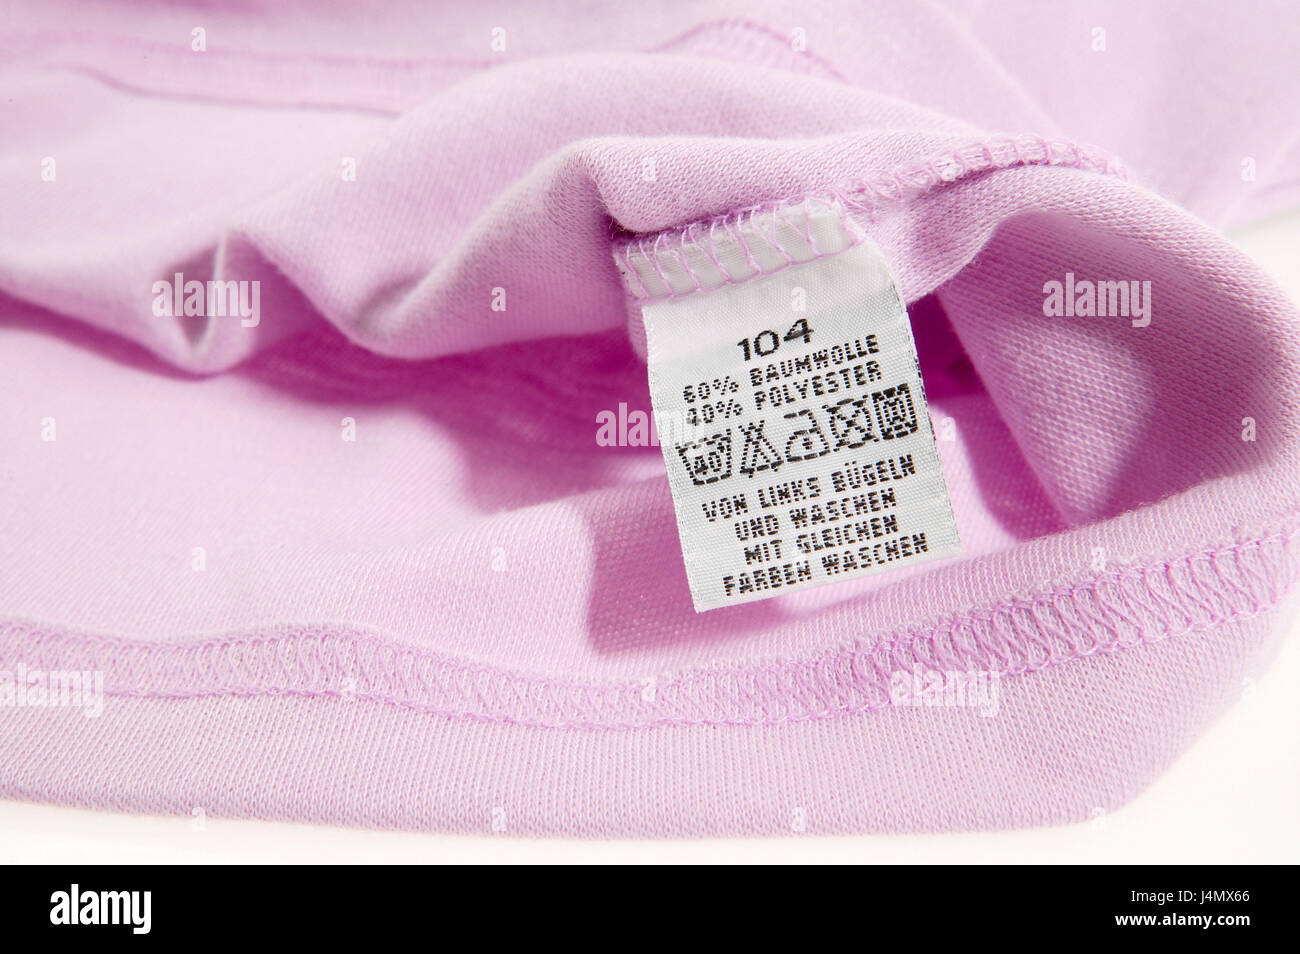 Garment Label Nursing Instructions Clothes Clothing Textiles